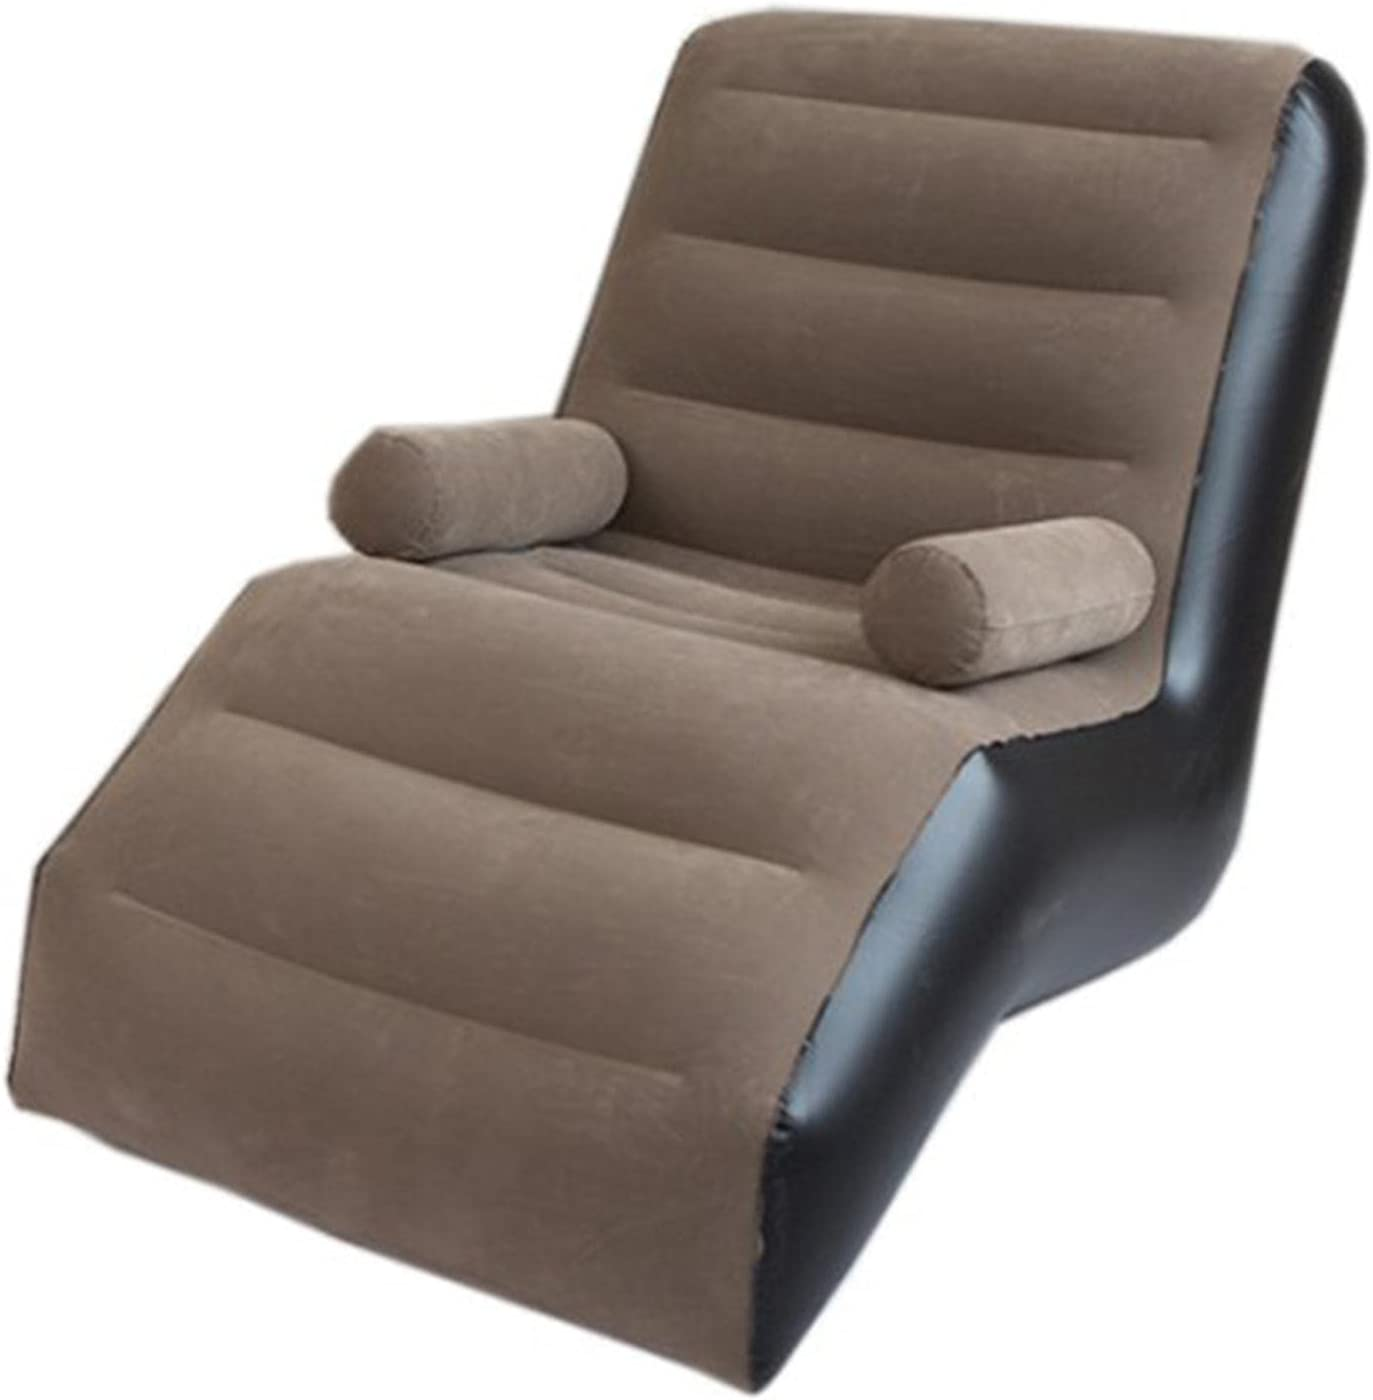 Leisure Max 72% OFF Inflatable Lazy Sofa Portable Chair Max 52% OFF Dec